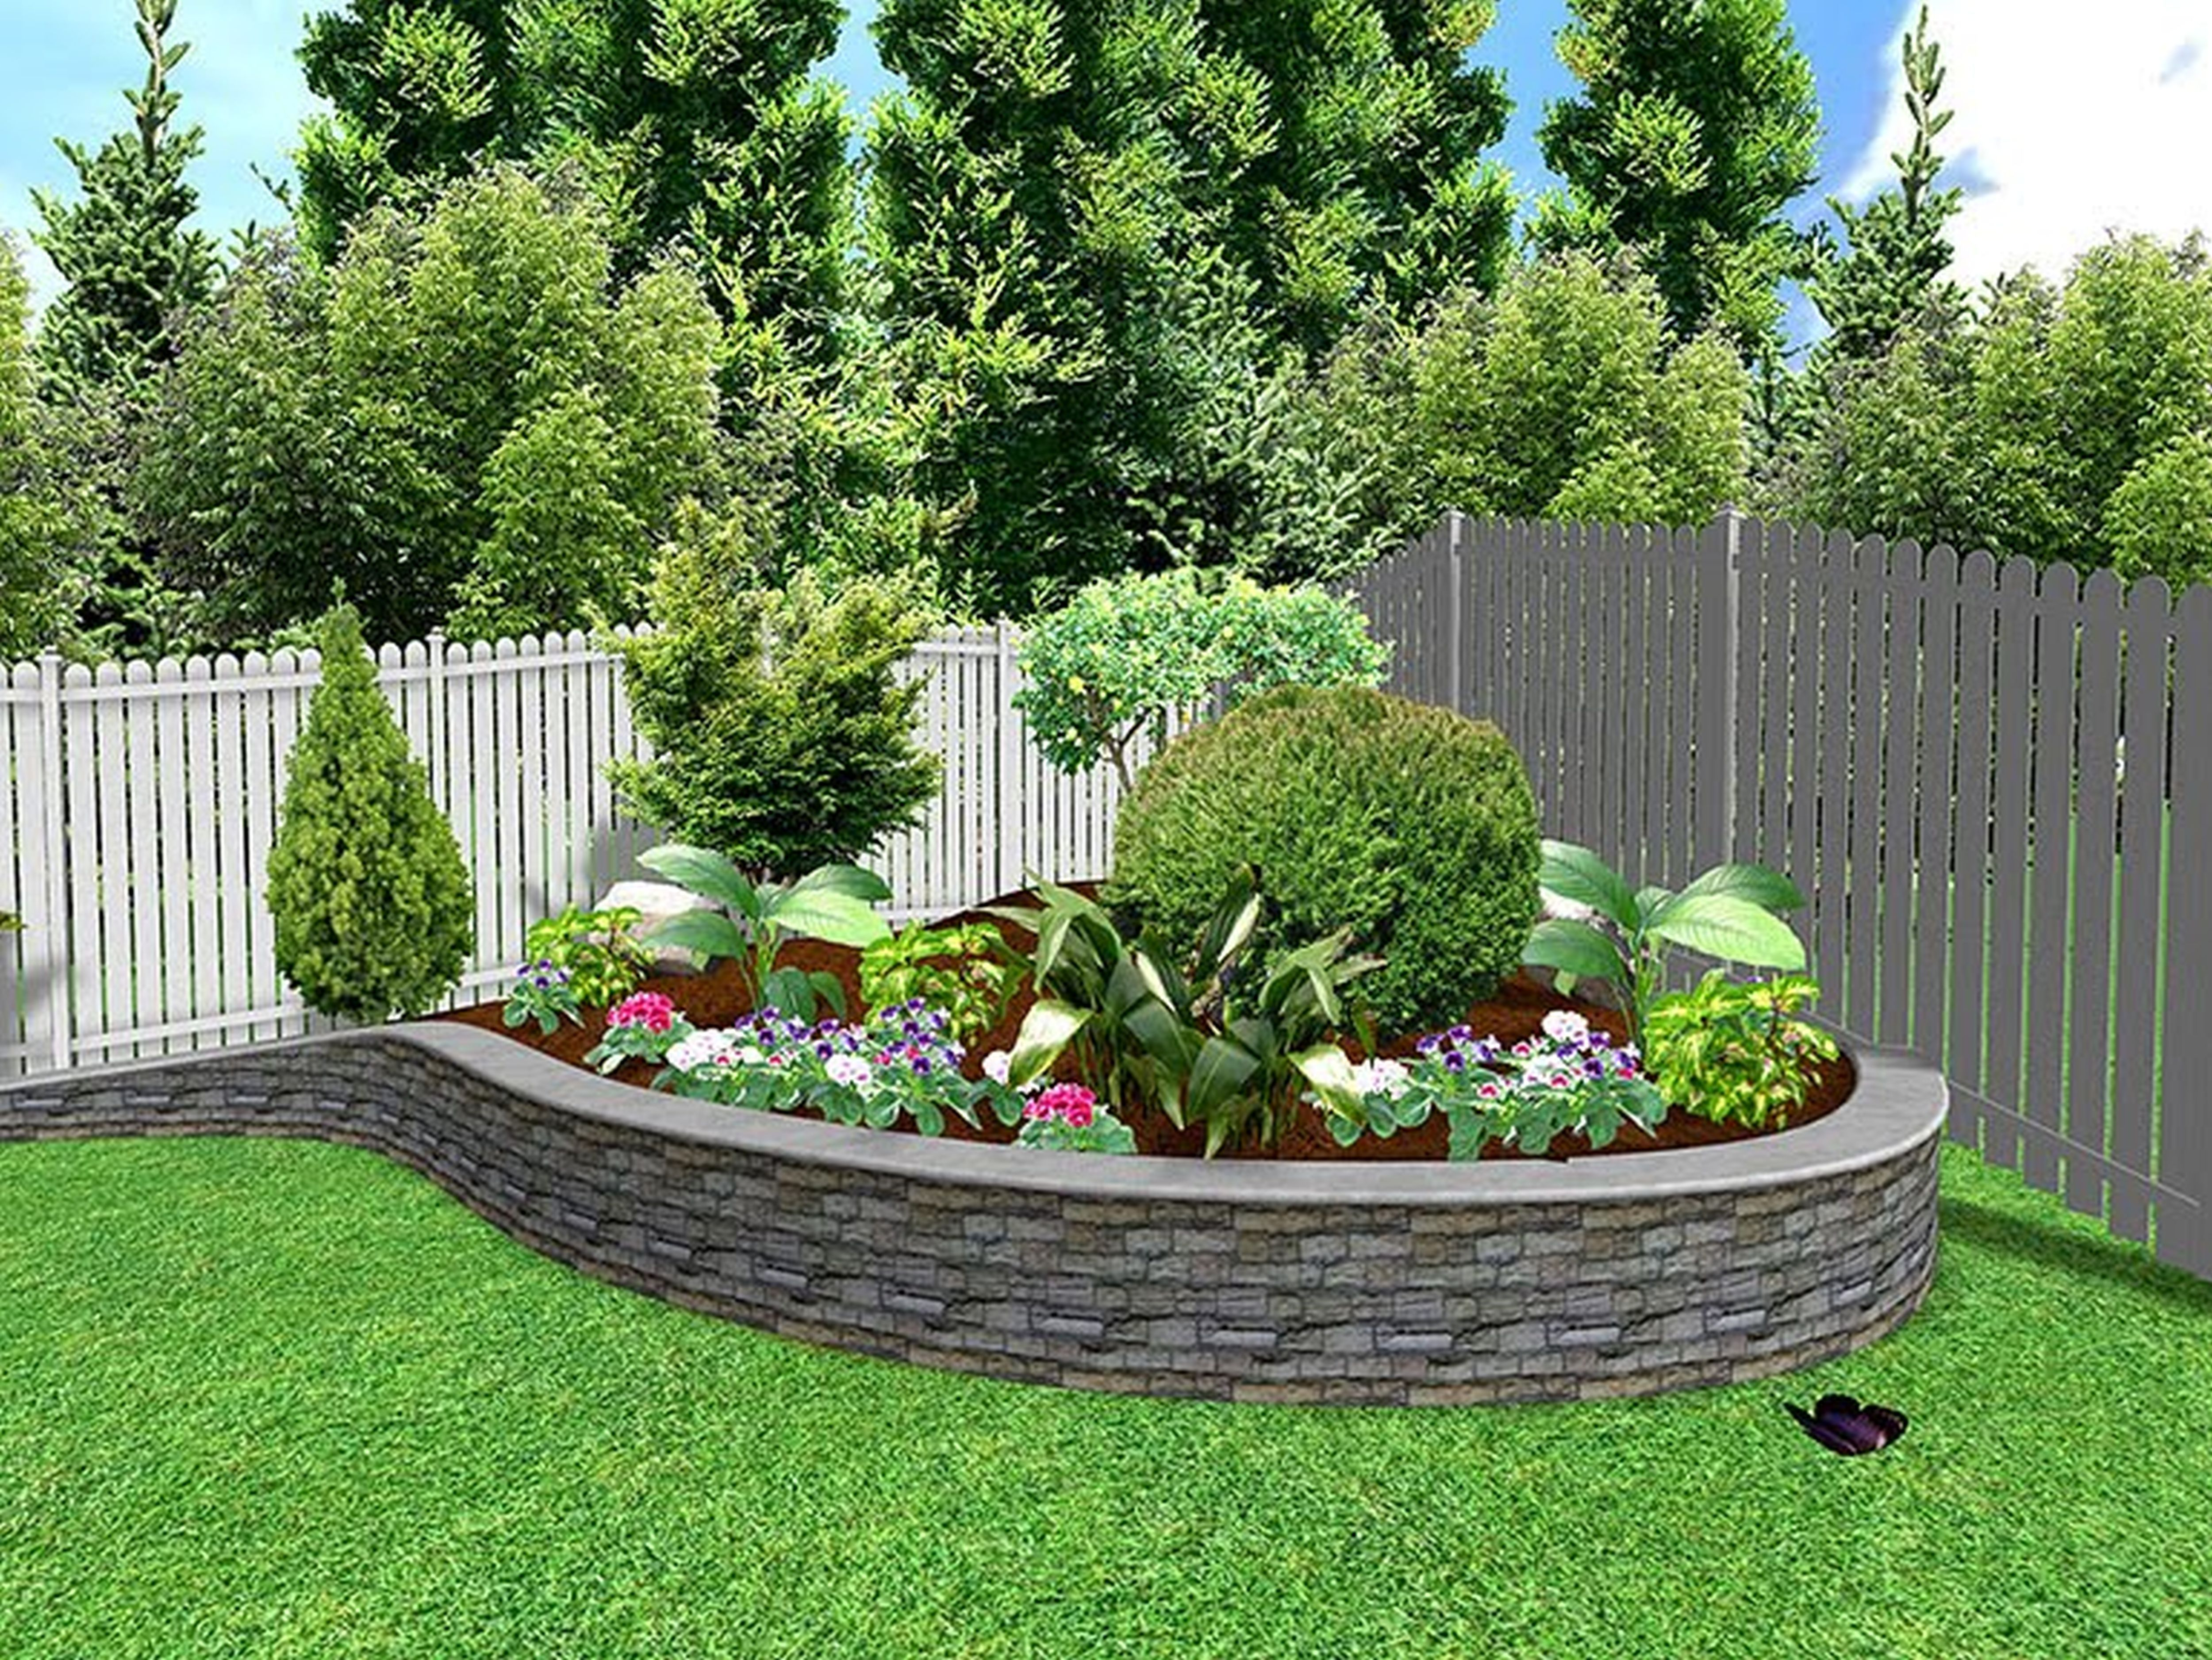 Front yard landscaping ideas with fence - Find This Pin And More On Gardening Get Popular Inspiring Garden Landscaping Ideas Backyard